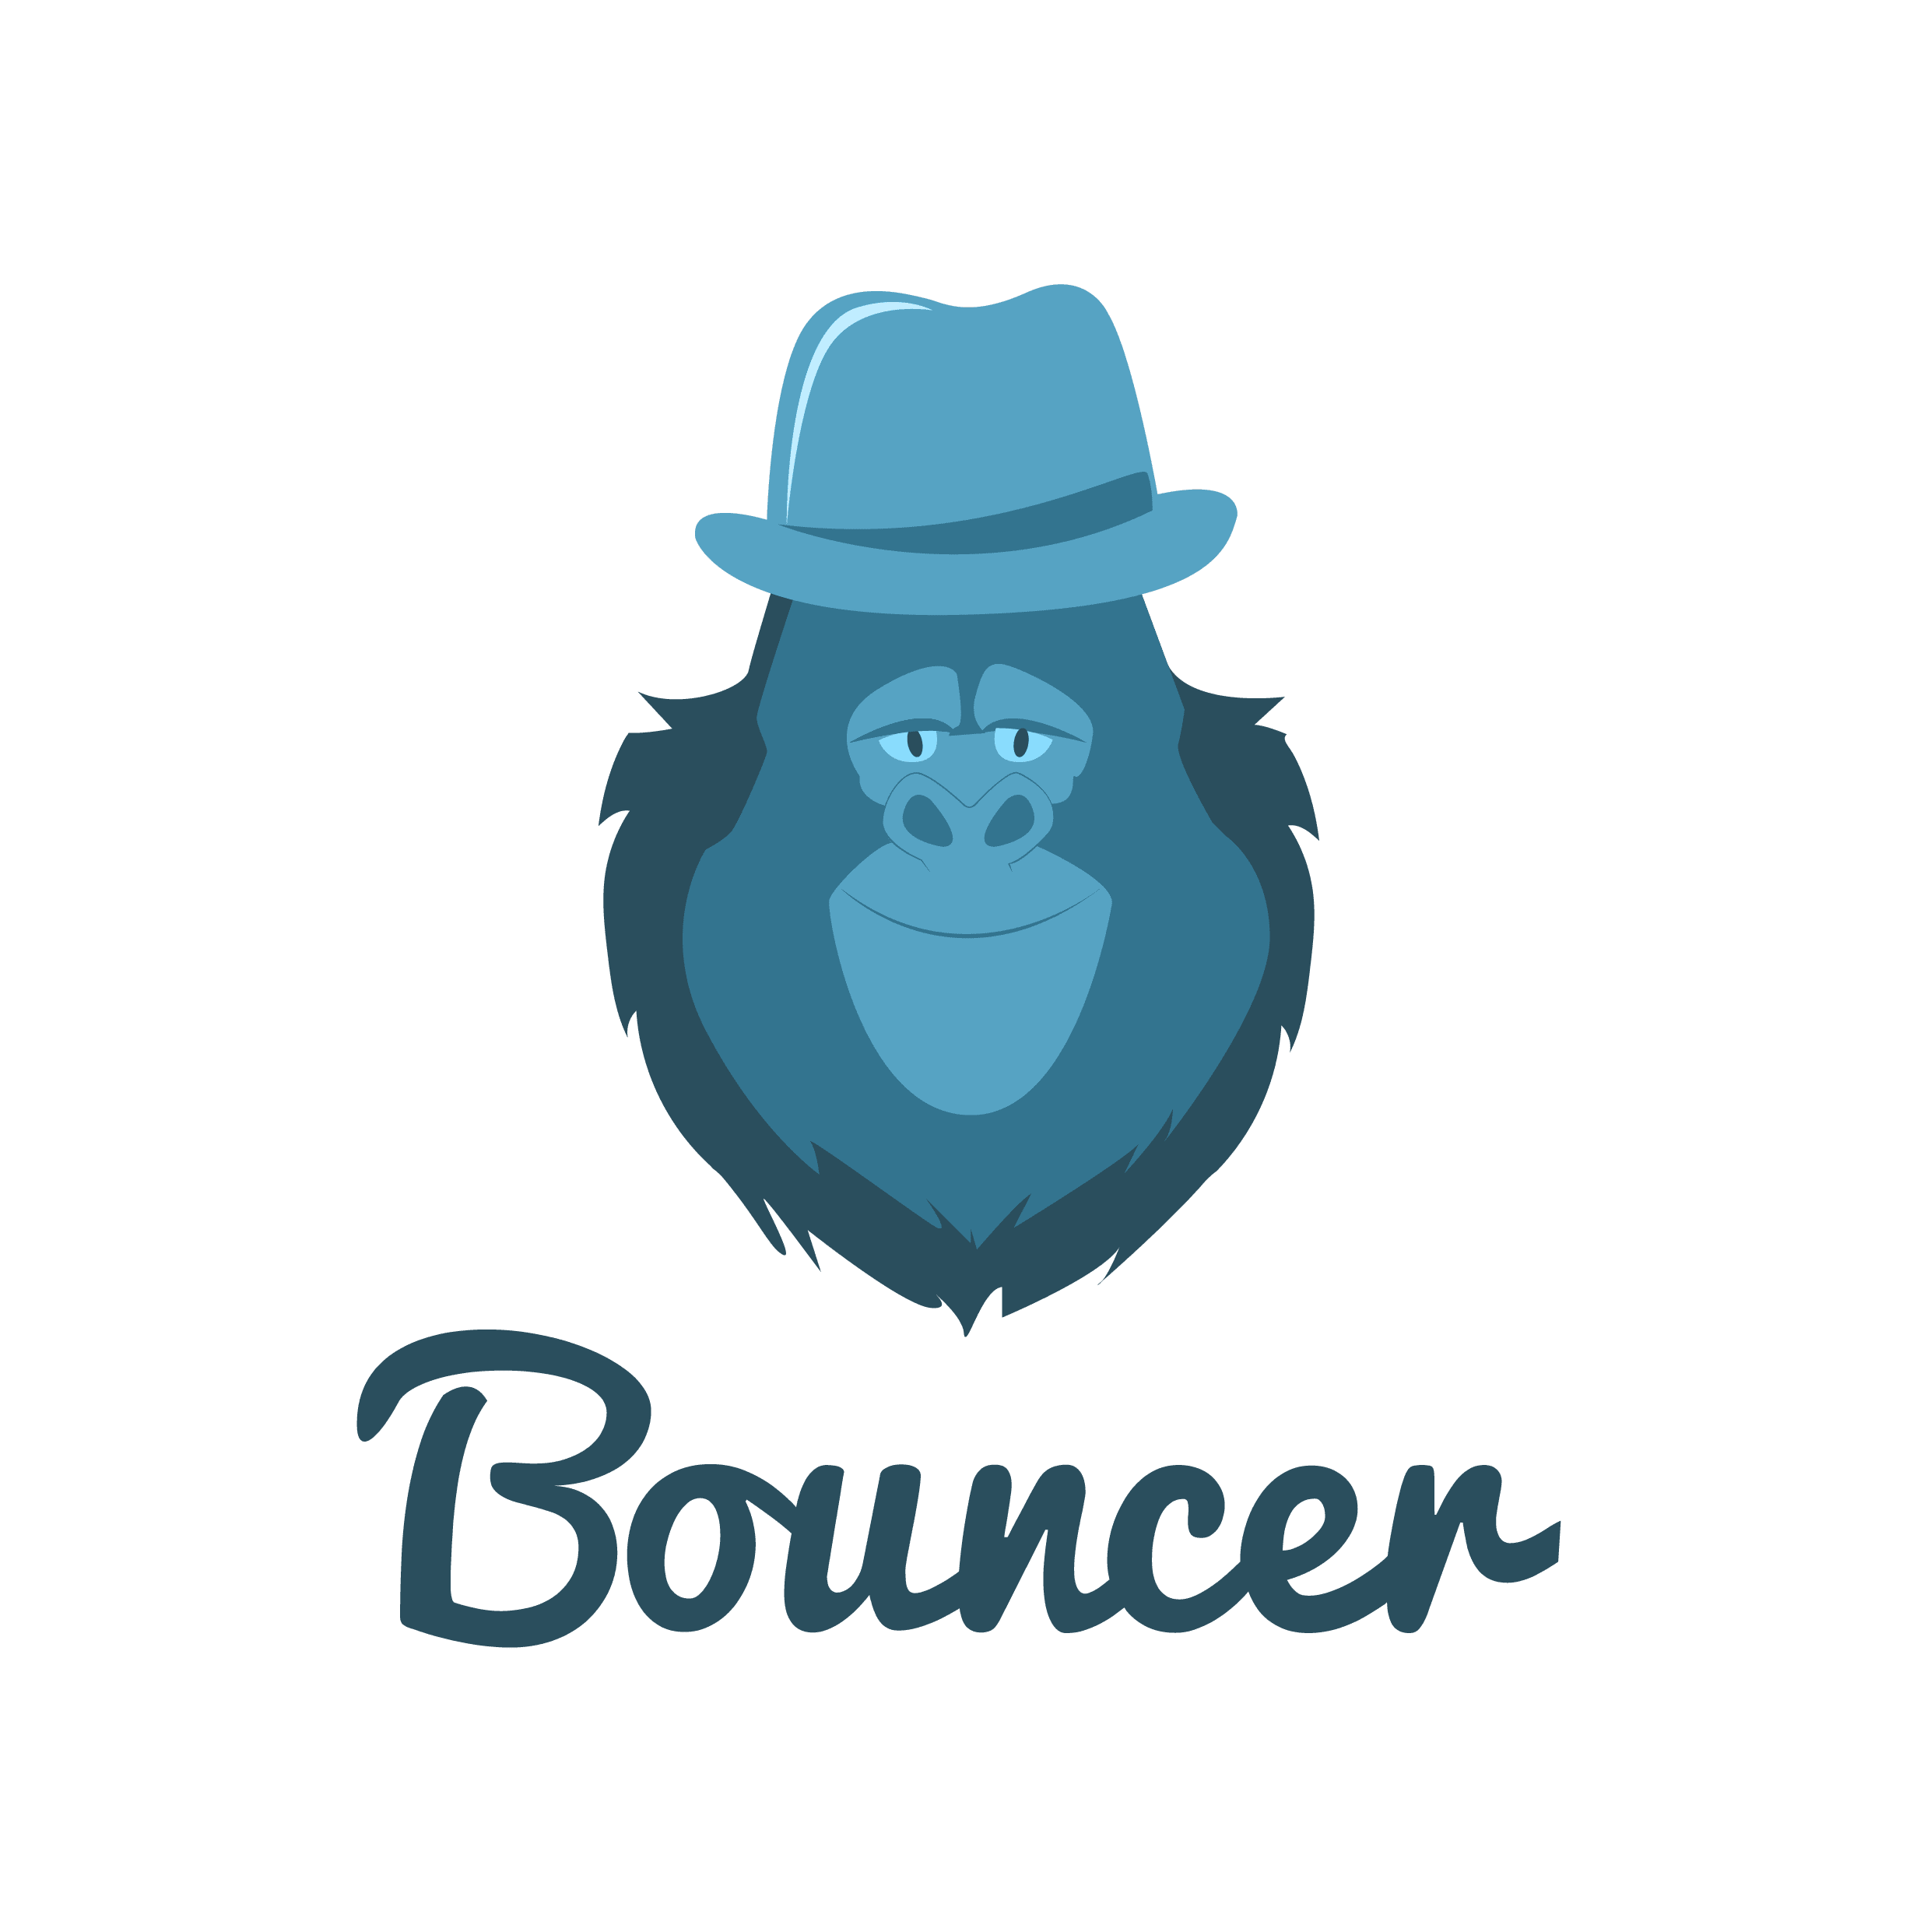 Keep your bounce rate low and open rates high with Bouncer! You might clean your email lists with our reliable email verification and list cleaning tool in 3 simple steps. Our superb user-friendly email verification app helps you enhance communication and reach out to a real person with ease and promptness.Bouncer protects your sender's reputation, decreases bounce rate and improves your deliverability, by not allowing a single undeliverable, risky or unknown email address to sneak into your email list. Verify your emails with the most advanced checker on the market!